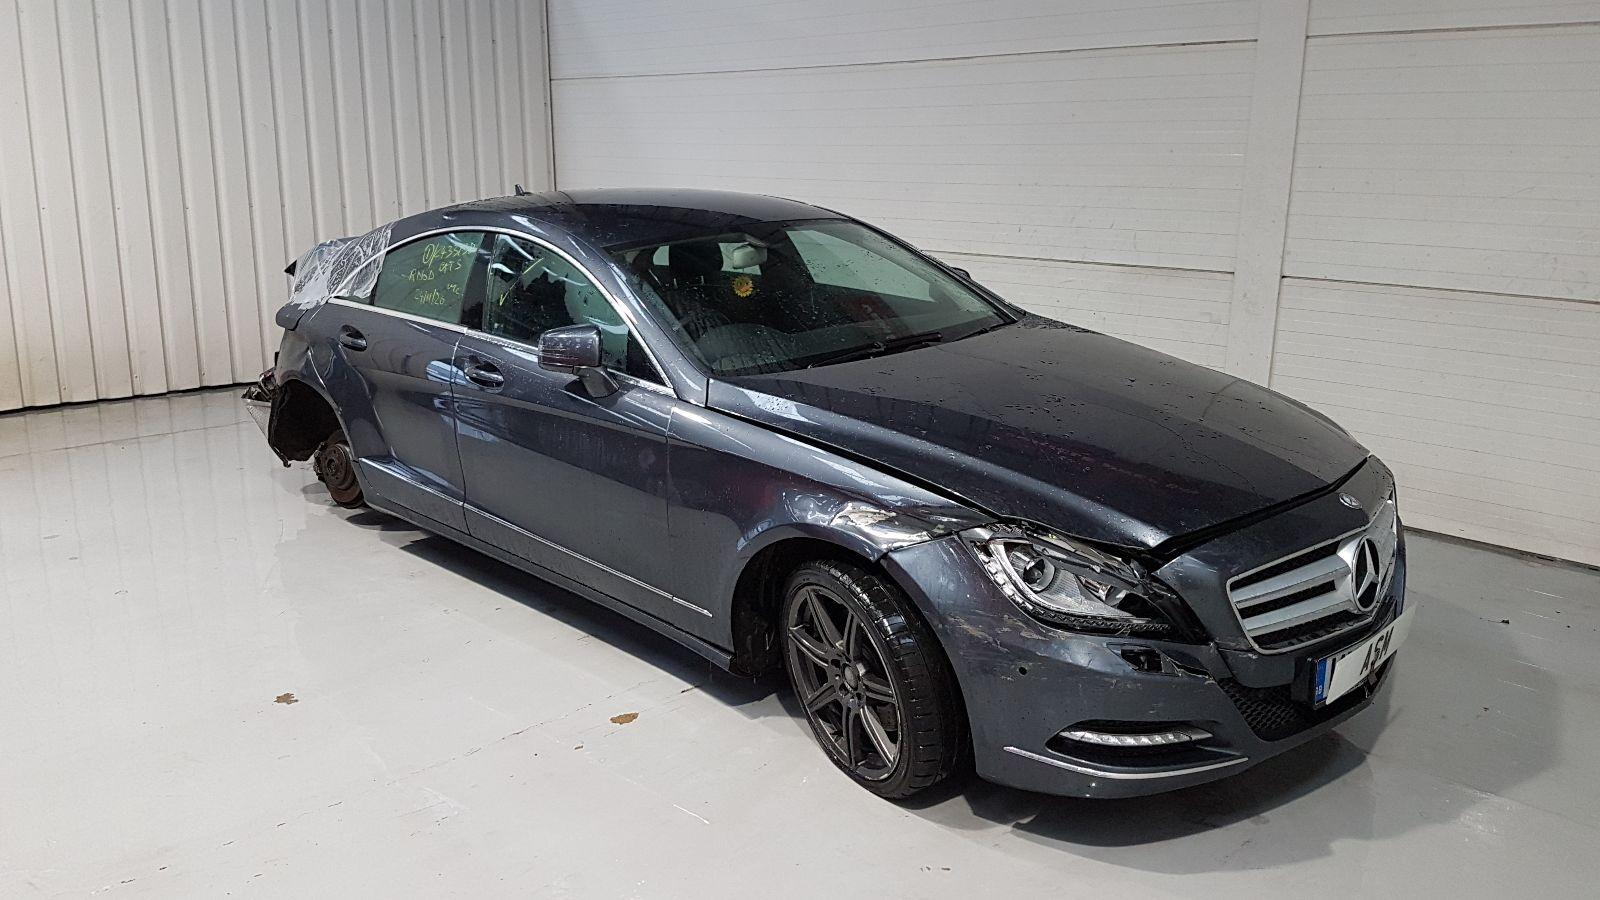 Image for a 2012 Mercedes Cls Class 3 Diesel OM642.853 Engine